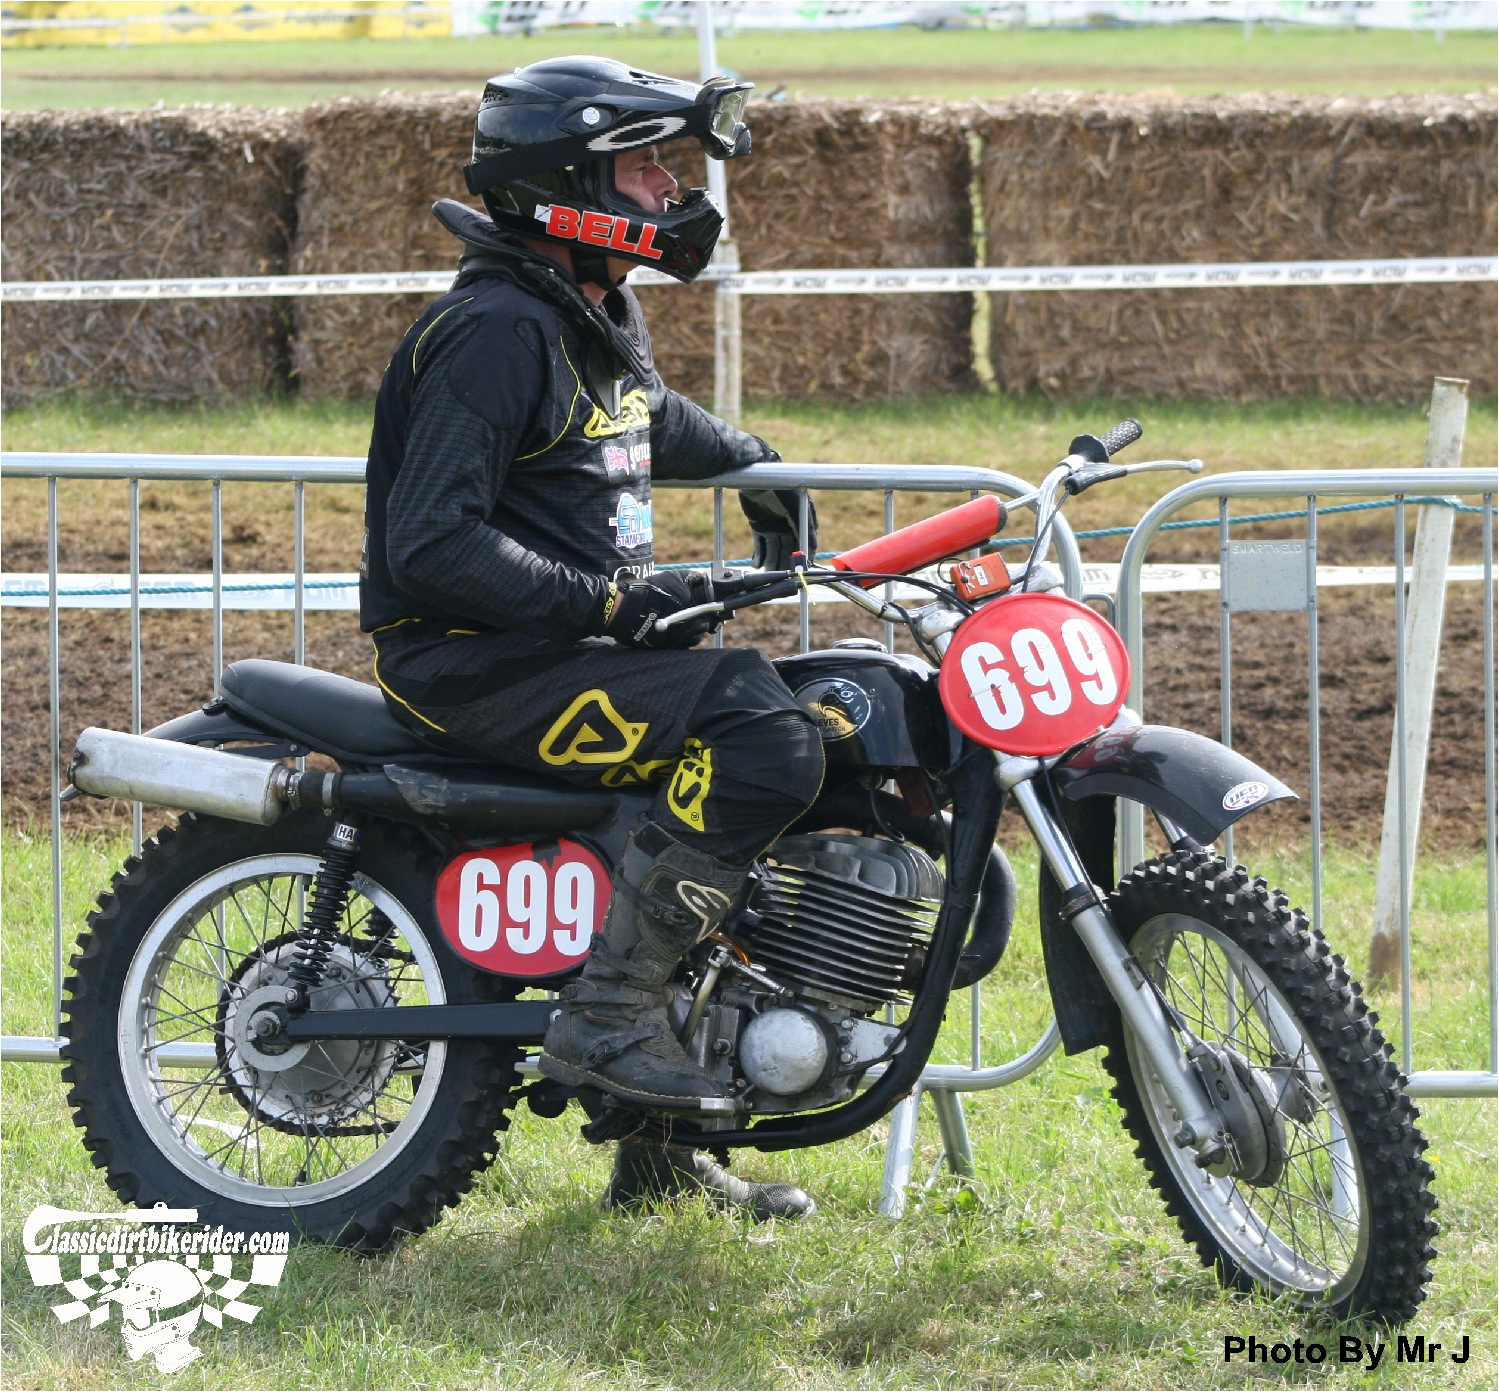 king of the castle 2015 photos Farleigh Castle twinshock motocross classicdirtbikerider.com 137